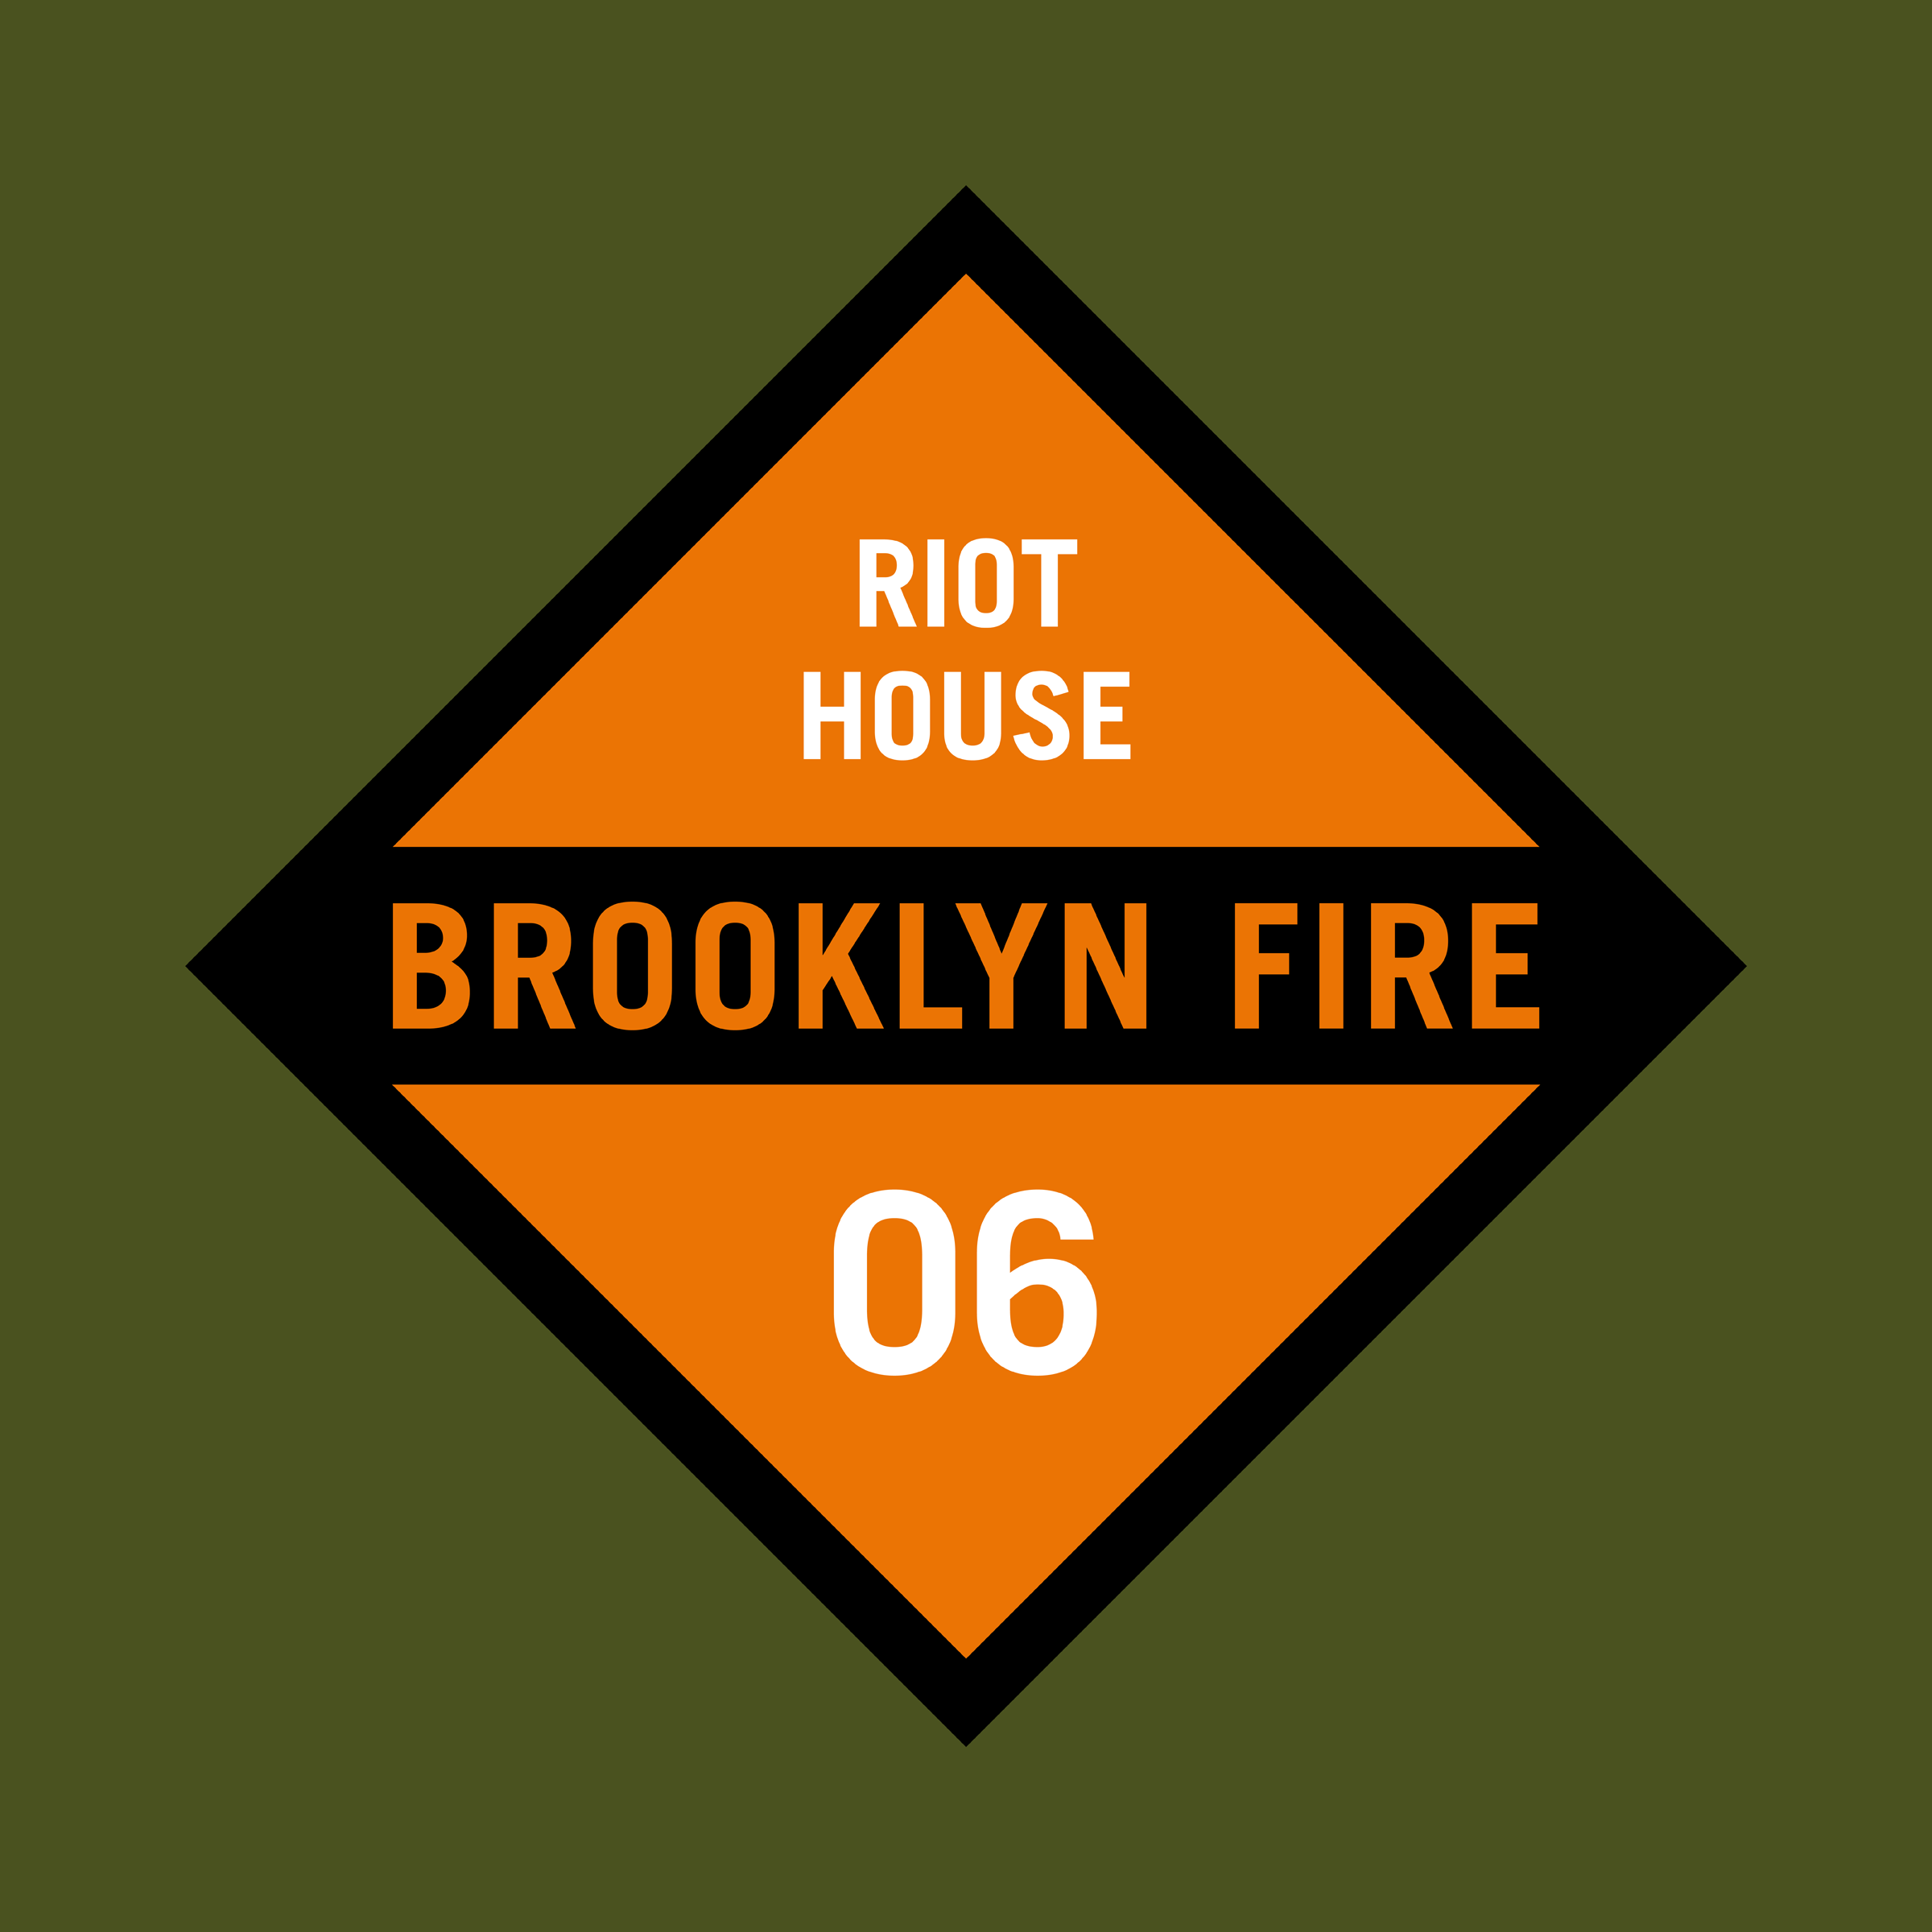 BRF_Brooklyn_Fire_RIOTHOUSE_06_2400x2400px (1)